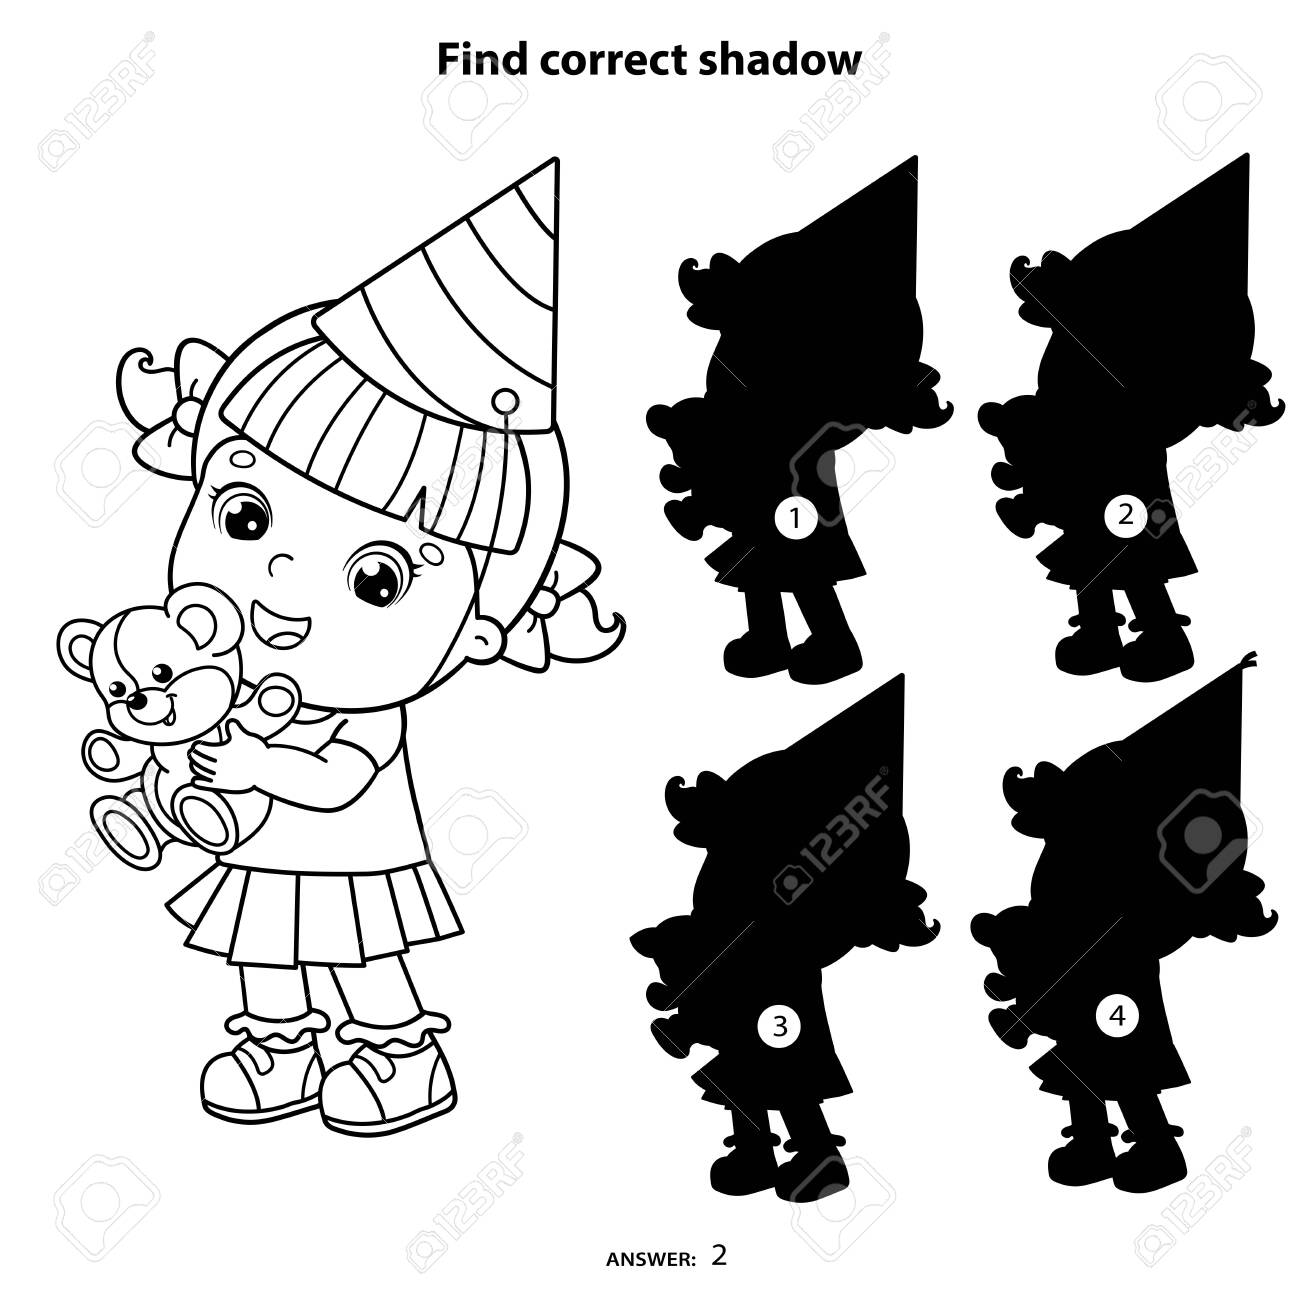 Puzzle Game For Kids Find Correct Shadow Coloring Page Outline Royalty Free Cliparts Vectors And Stock Illustration Image 144137418